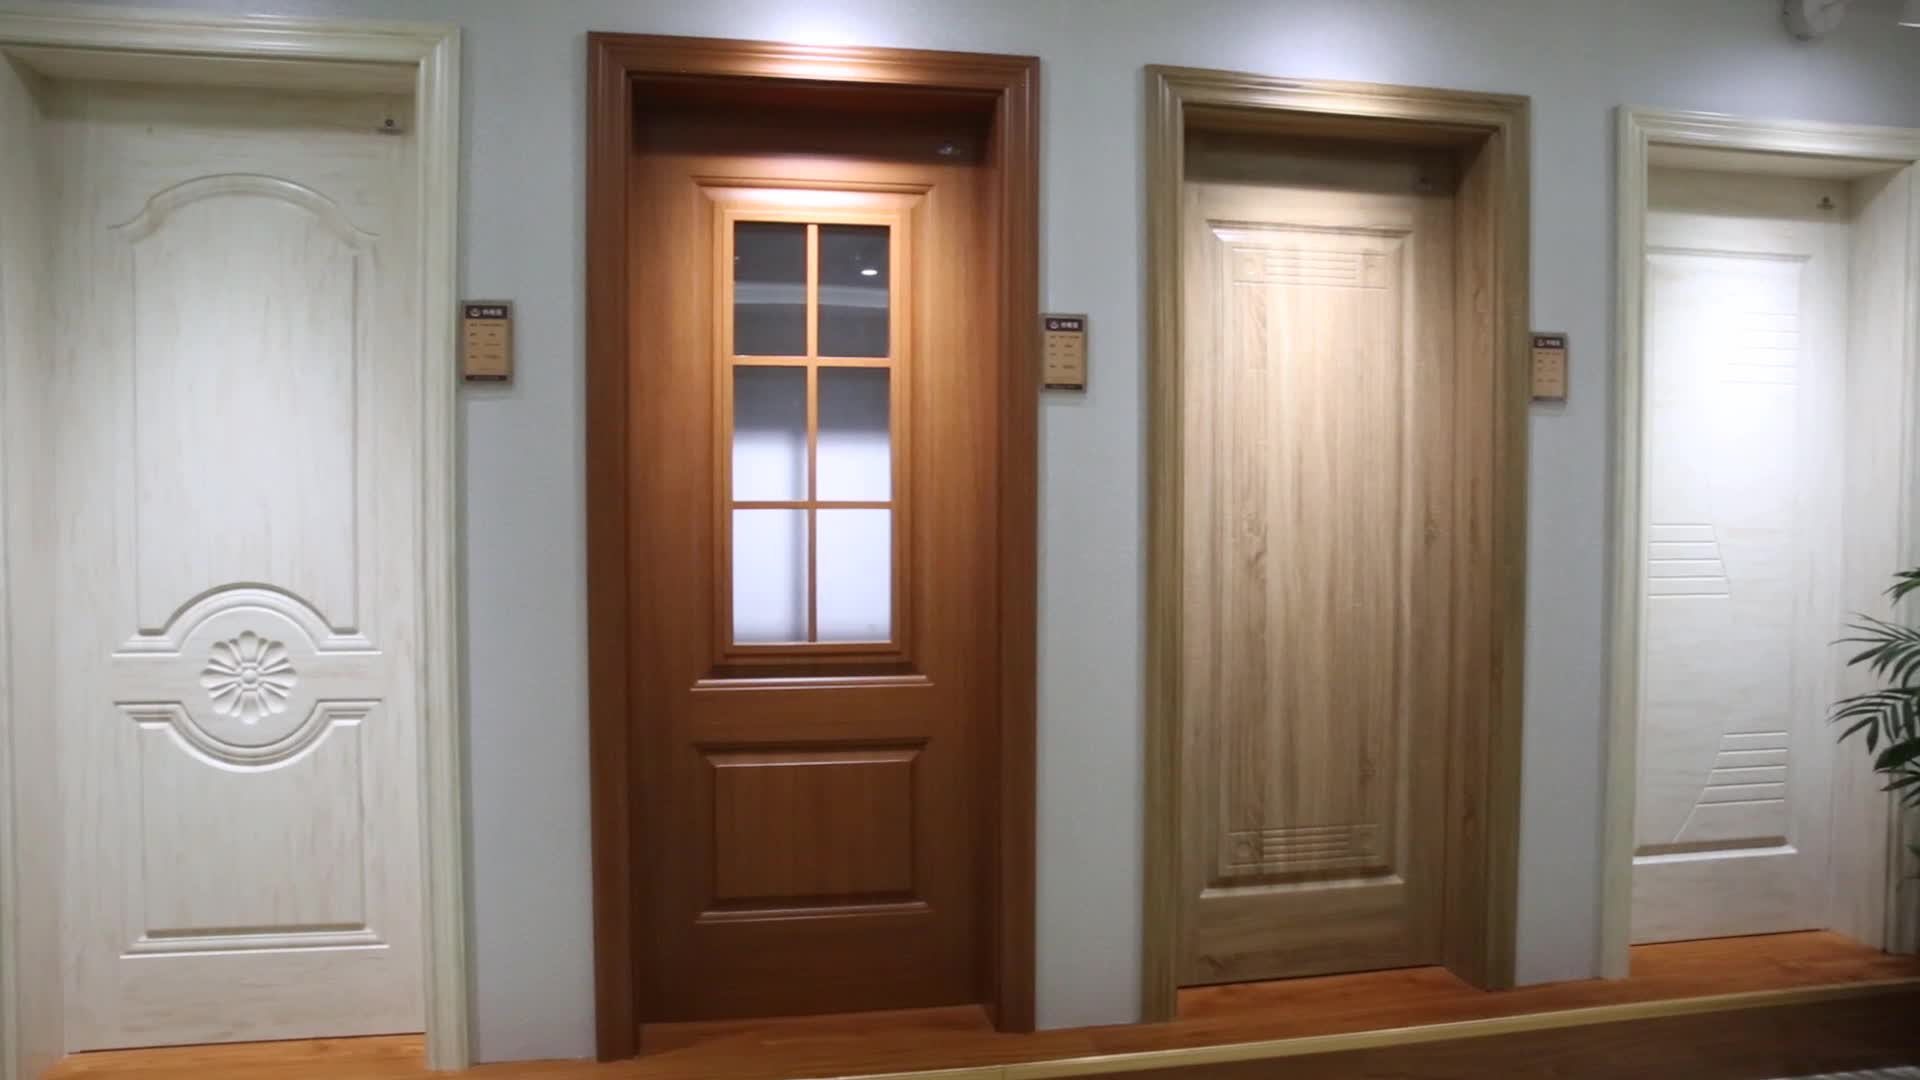 Latest Design Cheapest Interior Bedroom PVC Wood Doors With Frames